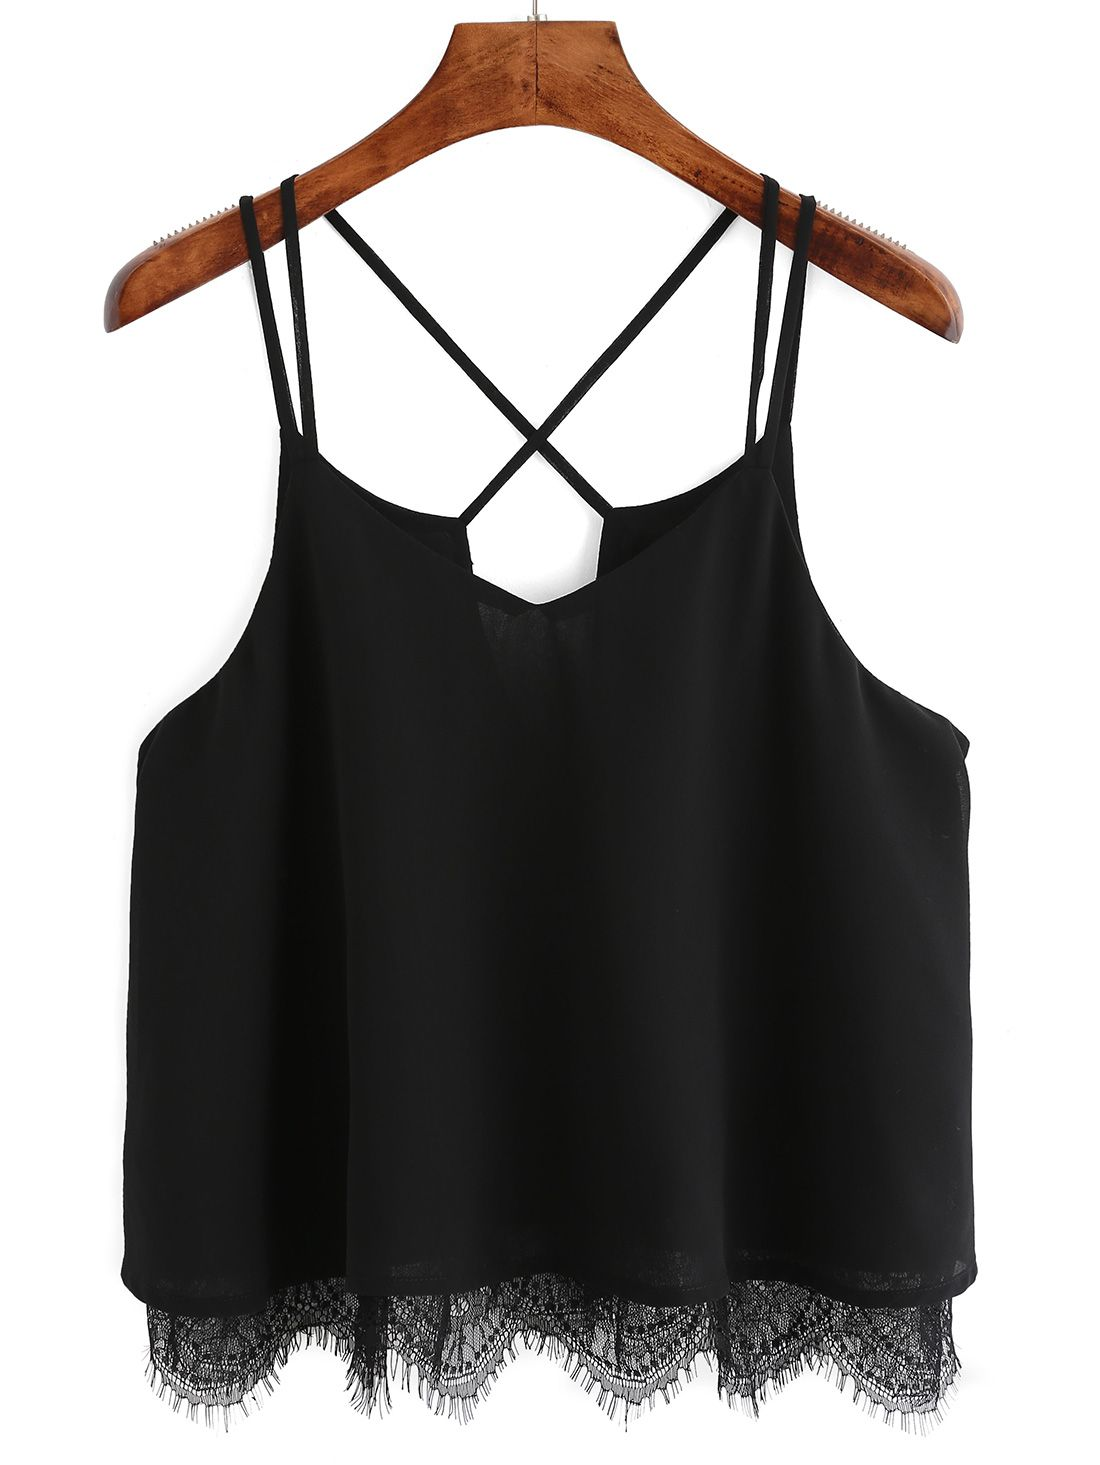 Cost For Sale Printed Racerback Top - Antonia by VIDA VIDA Sale Visa Payment Sale Cheapest jyBC65